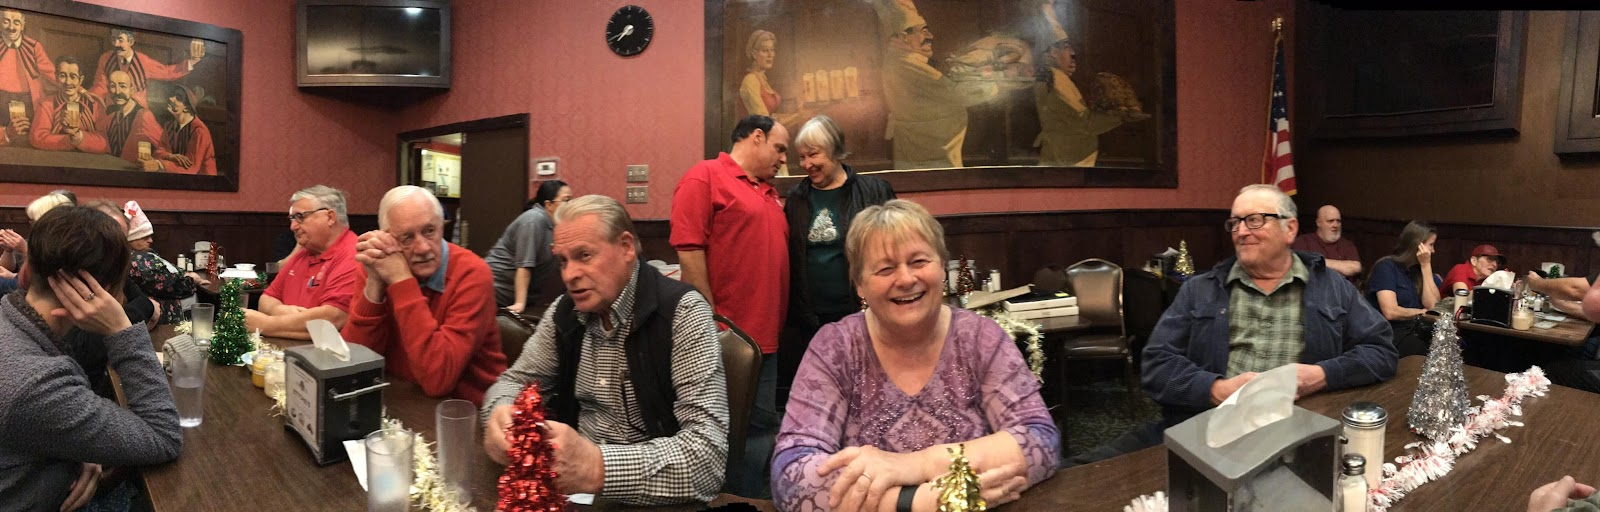 2018 RCARCS Holiday Dinner Photos by Sylvia Stork, KS6WTF